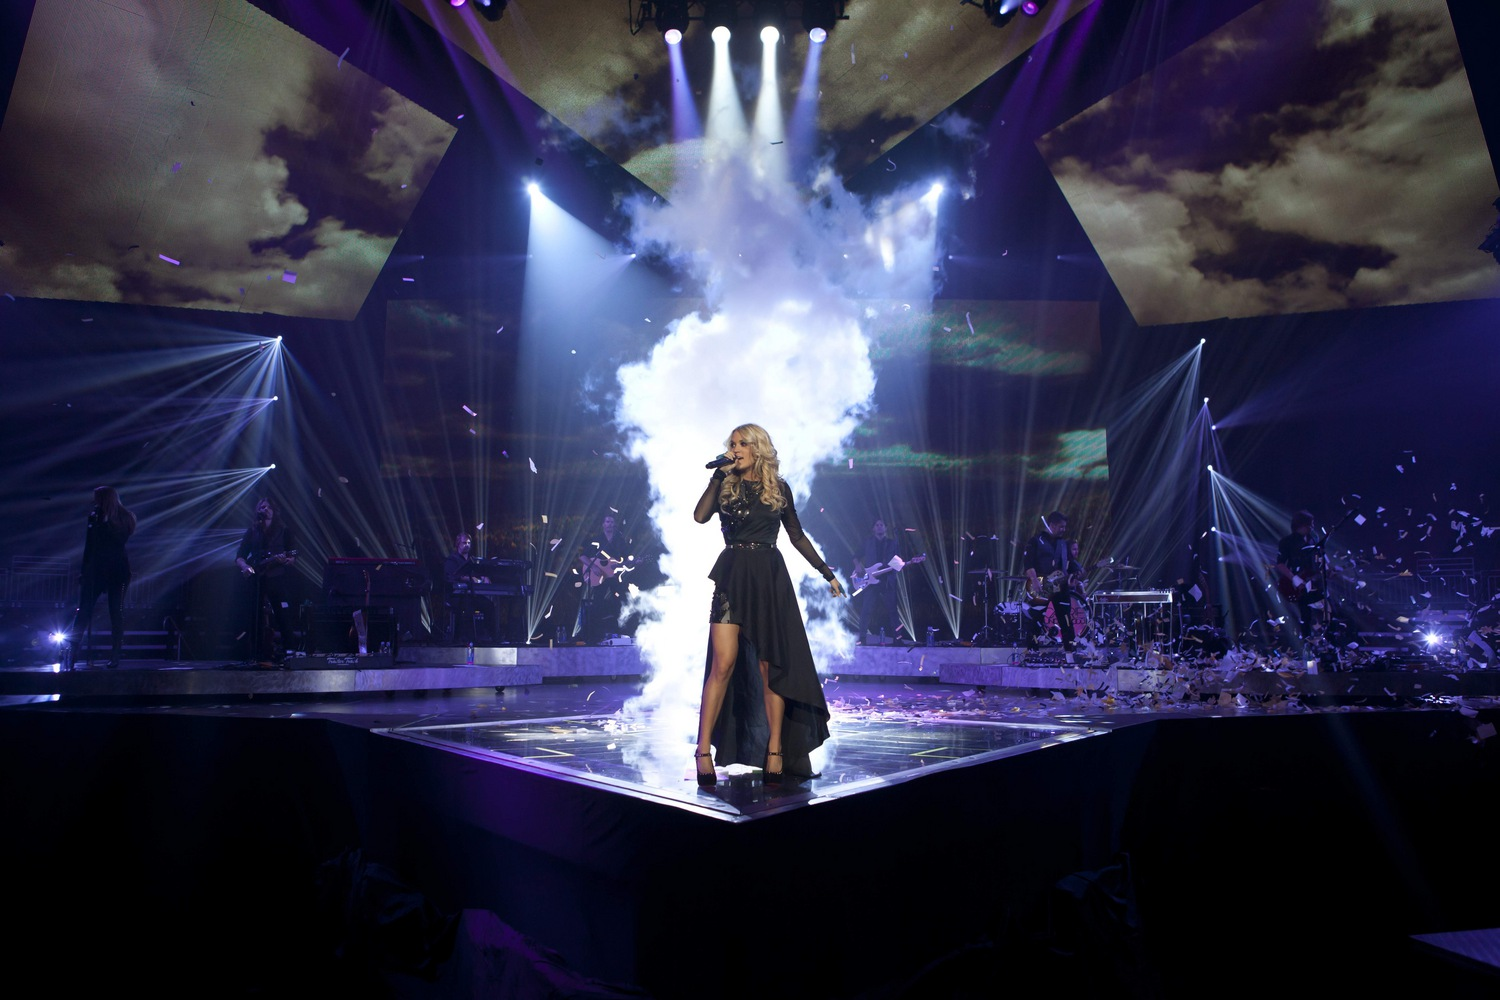 CARRIE UNDERWOOD CLOSES 2012 AS TOP FEMALE COUNTRY TOURING ARTIST